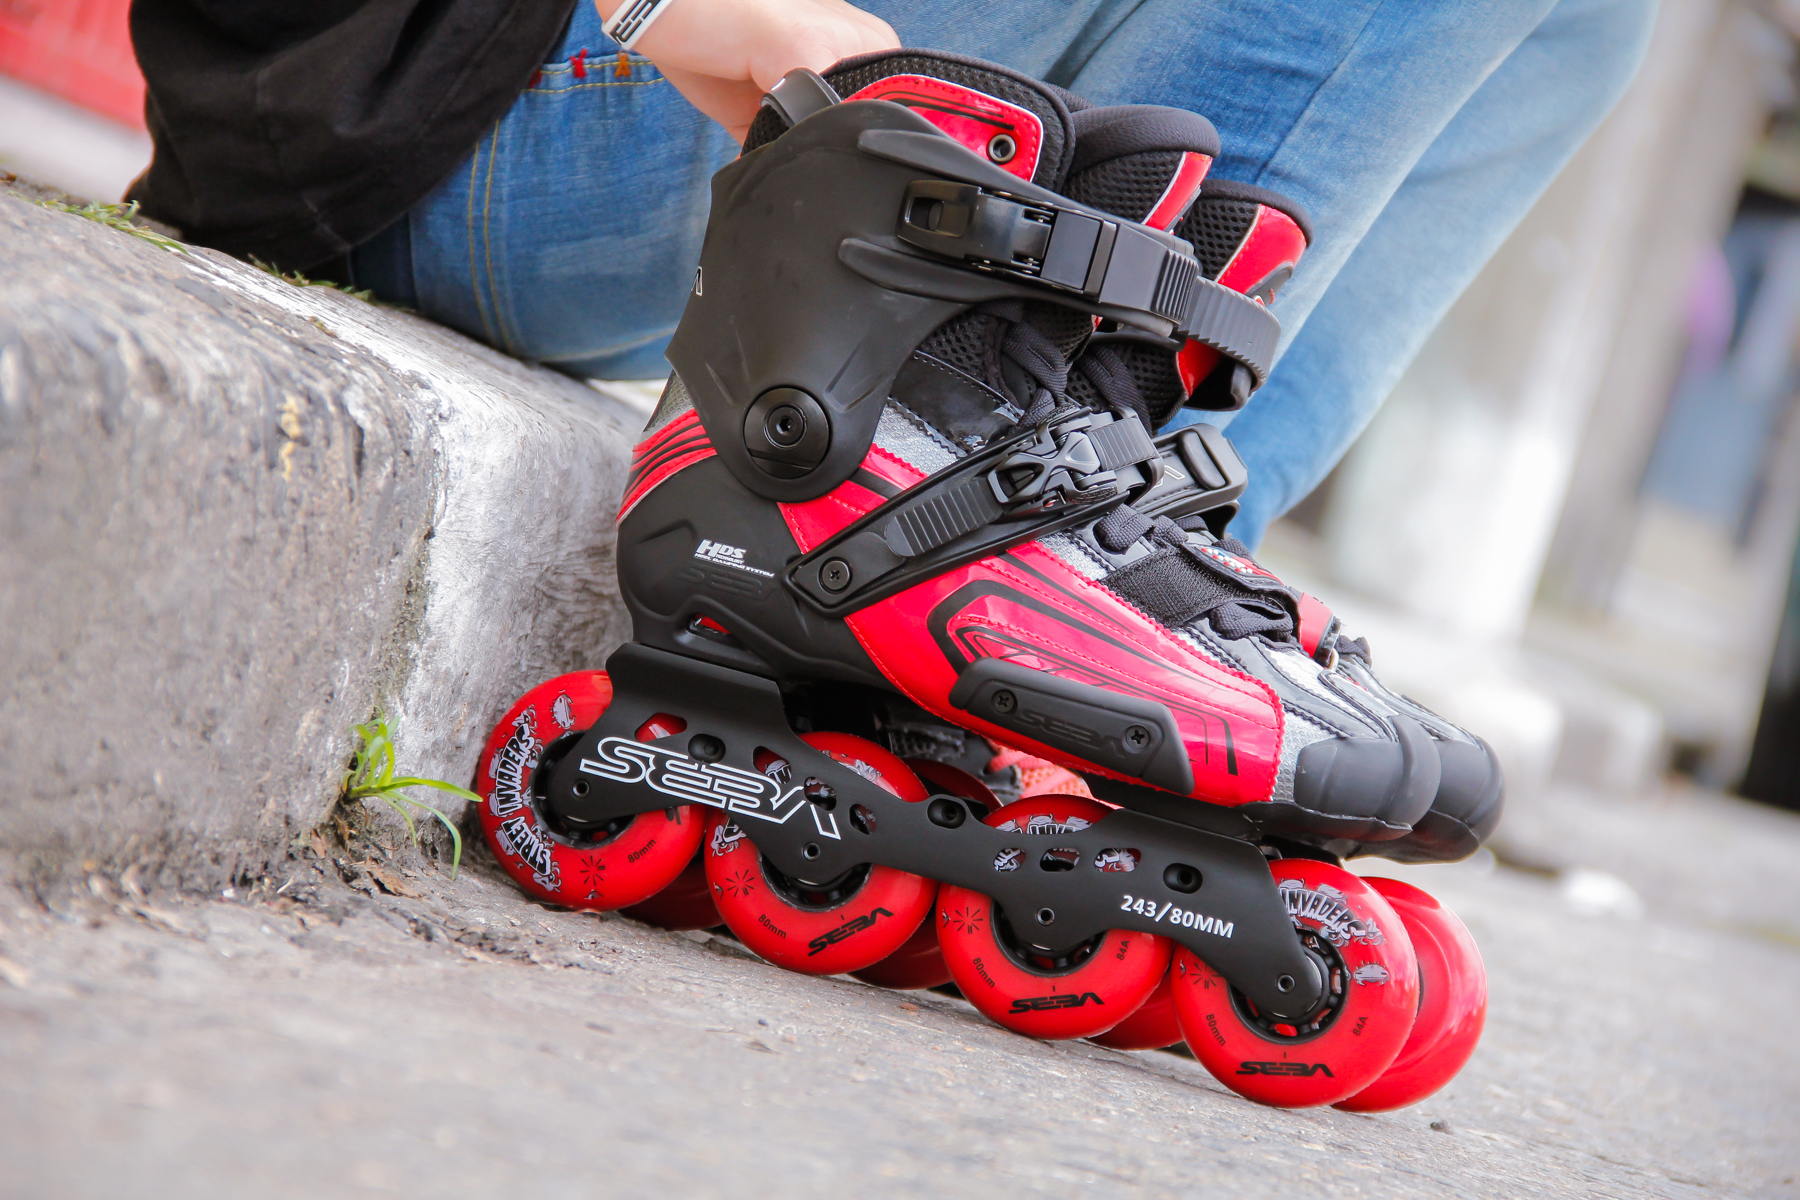 Patins Seba High Light Red (Vermelho) / patins para slalom, urban e freeride